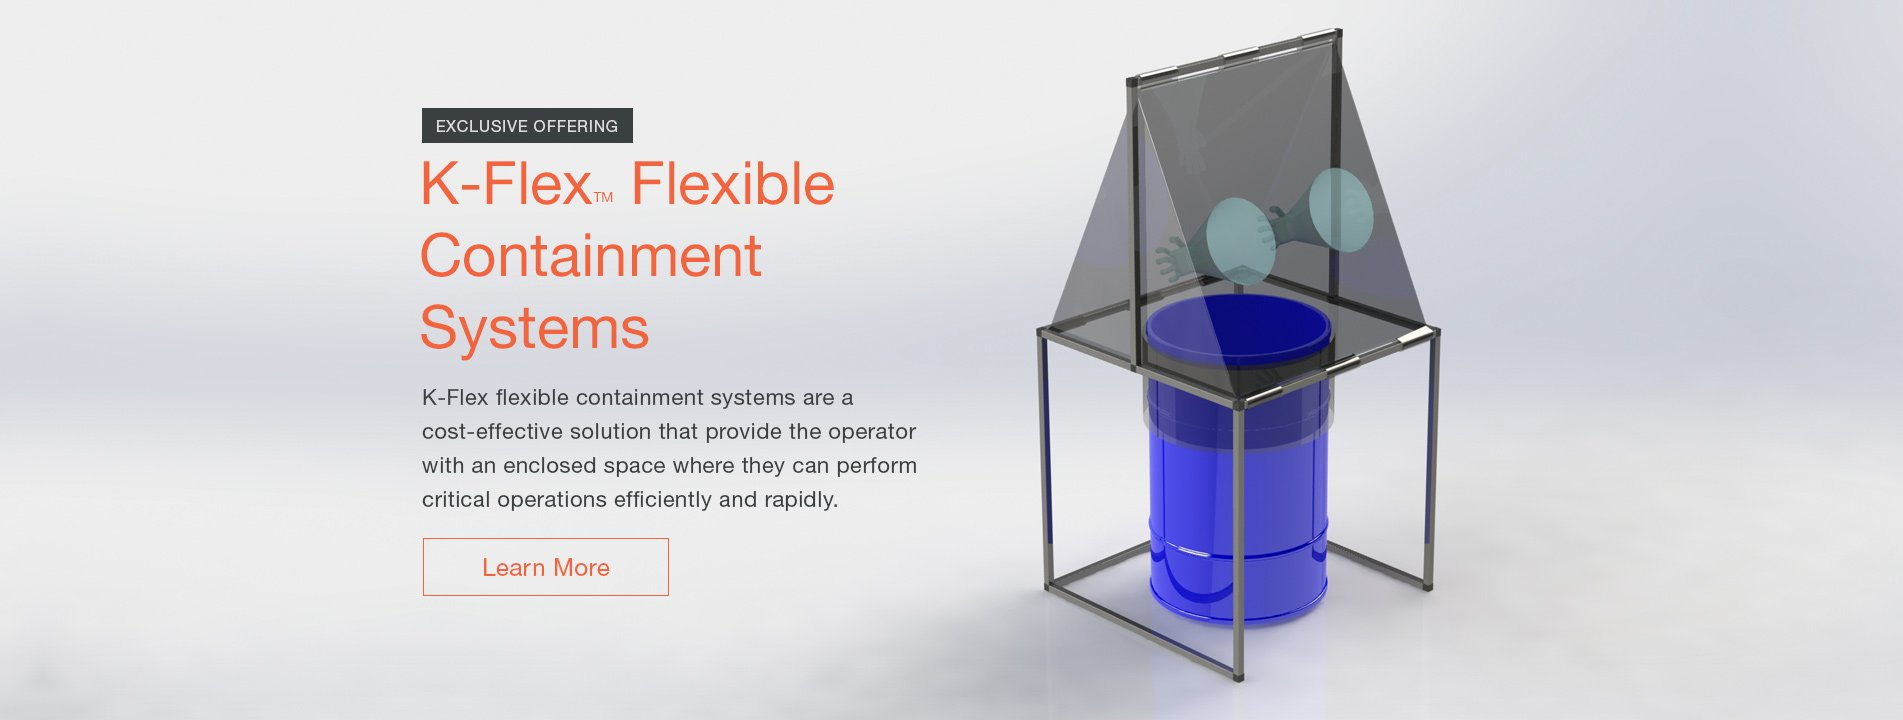 K-Flex Flexible Containment Systems